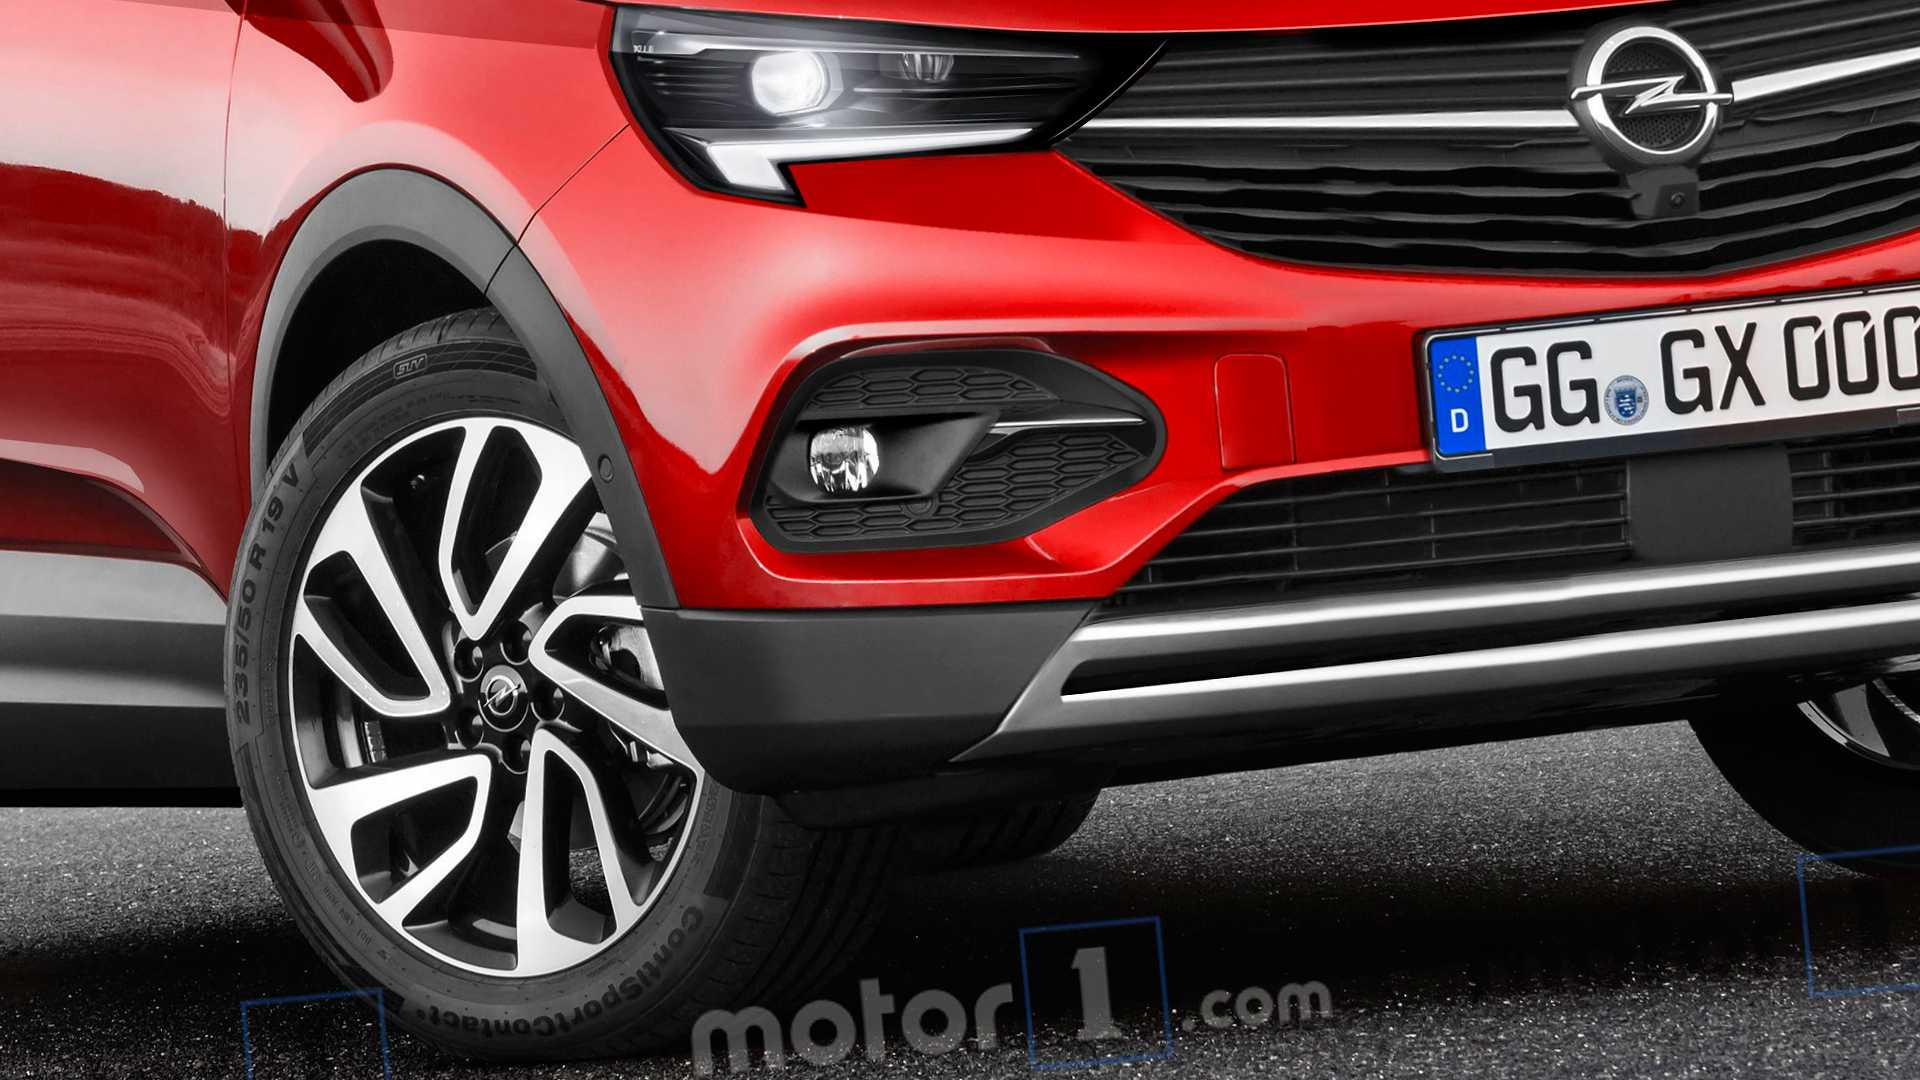 47 The New Opel Mokka X 2020 Rumors